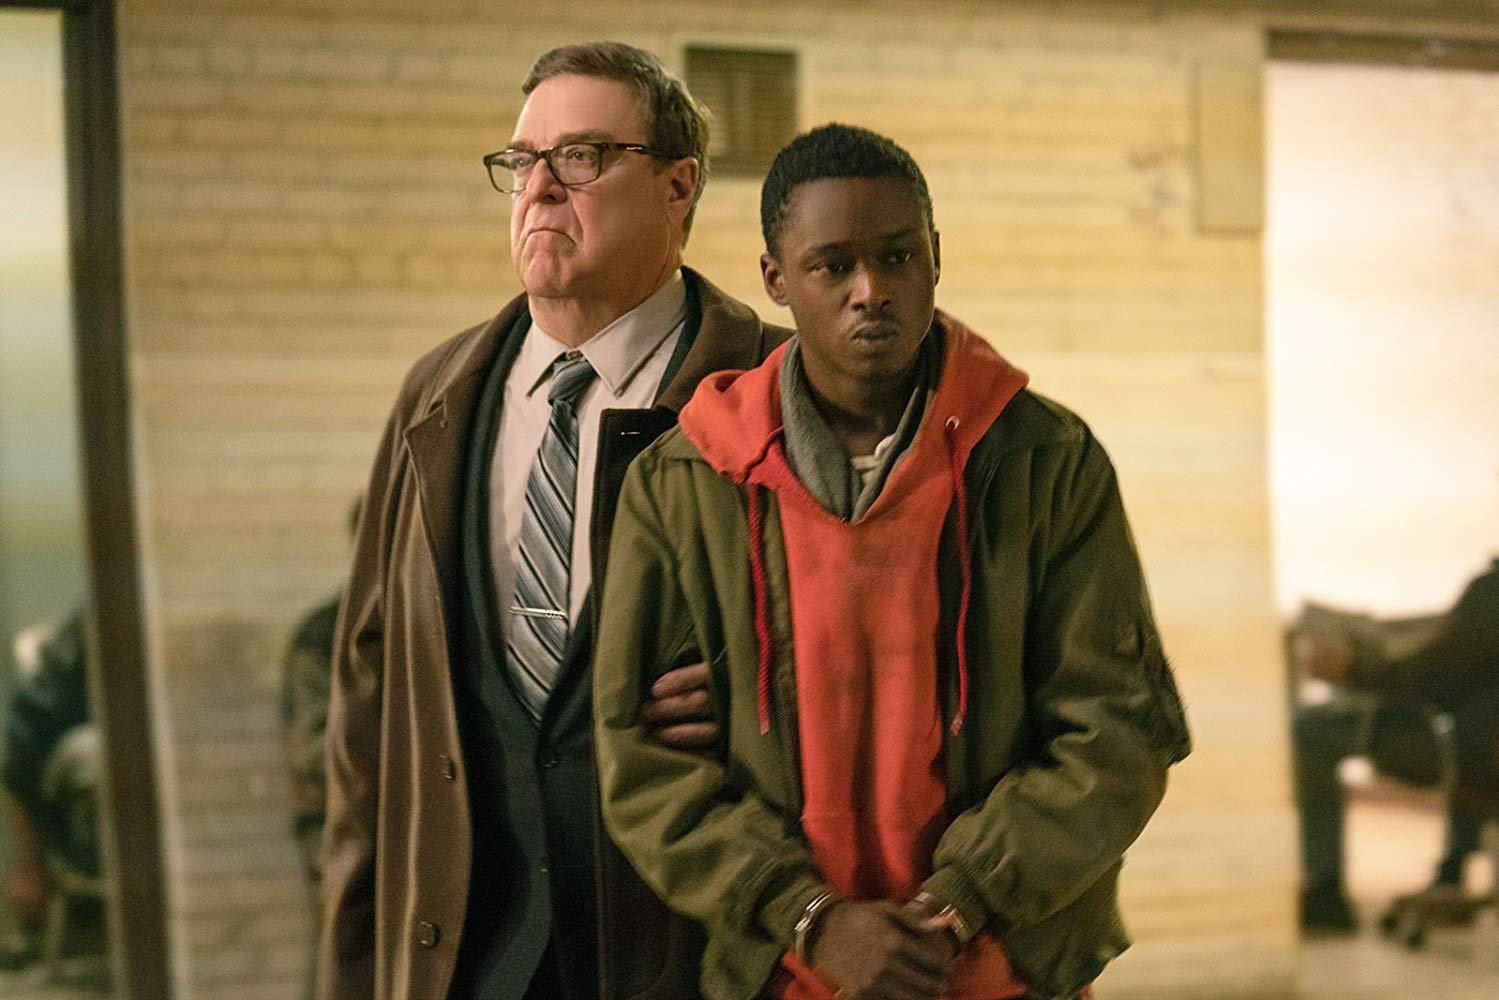 John Goodman and Ashton Sanders in CAPTIVE STATE (2019)